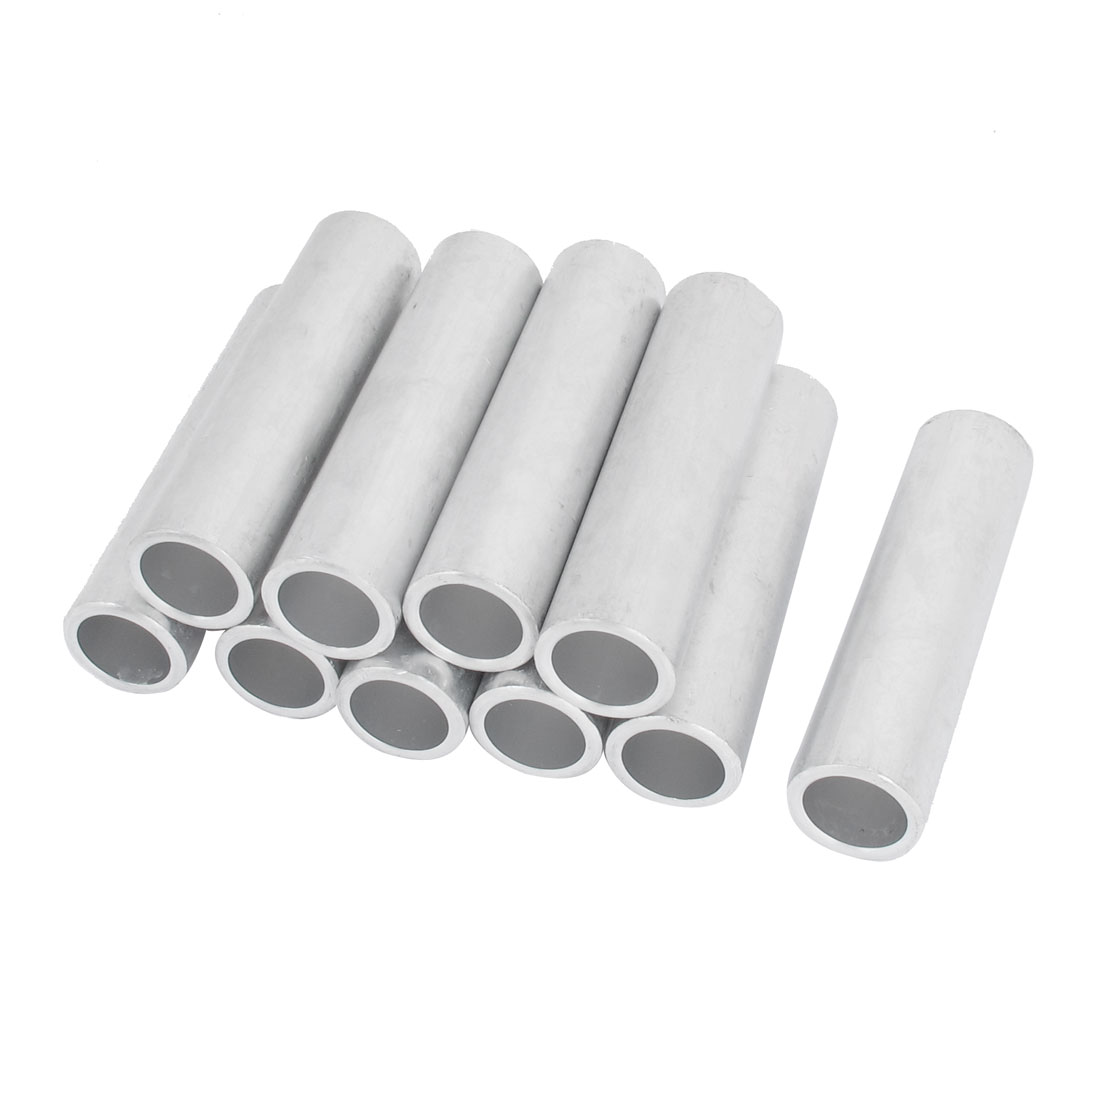 10PCS 23mm Inner Dia Straight Passing Through Aluminum Connecting Tube